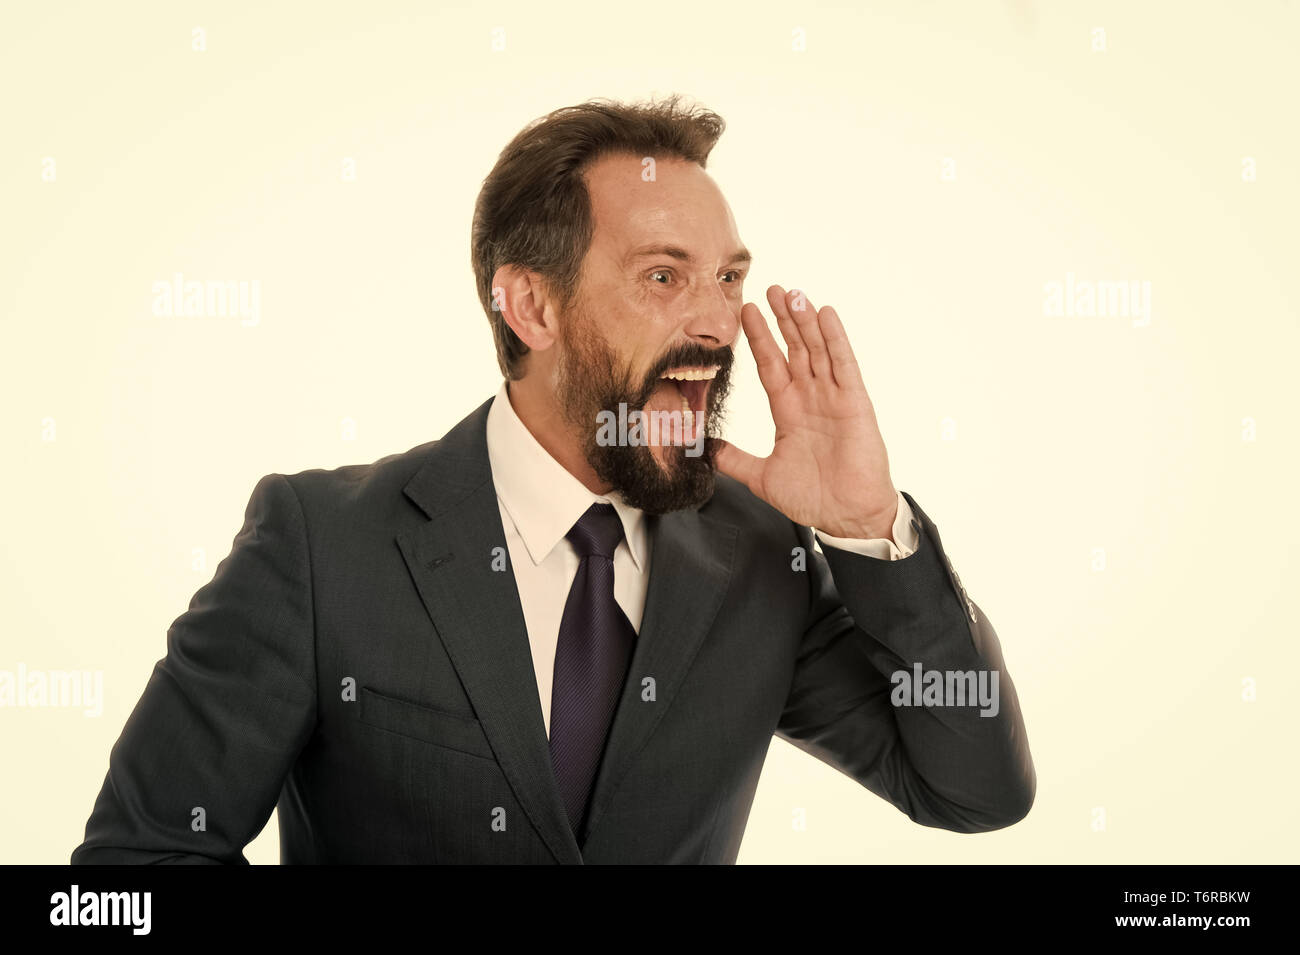 Overwhelming rumors. Businessman classic formal suit shouting loudly overwhelming news. Charismatic person achieves success easier. Businessman shouting face informing important. Do you hear me. Stock Photo